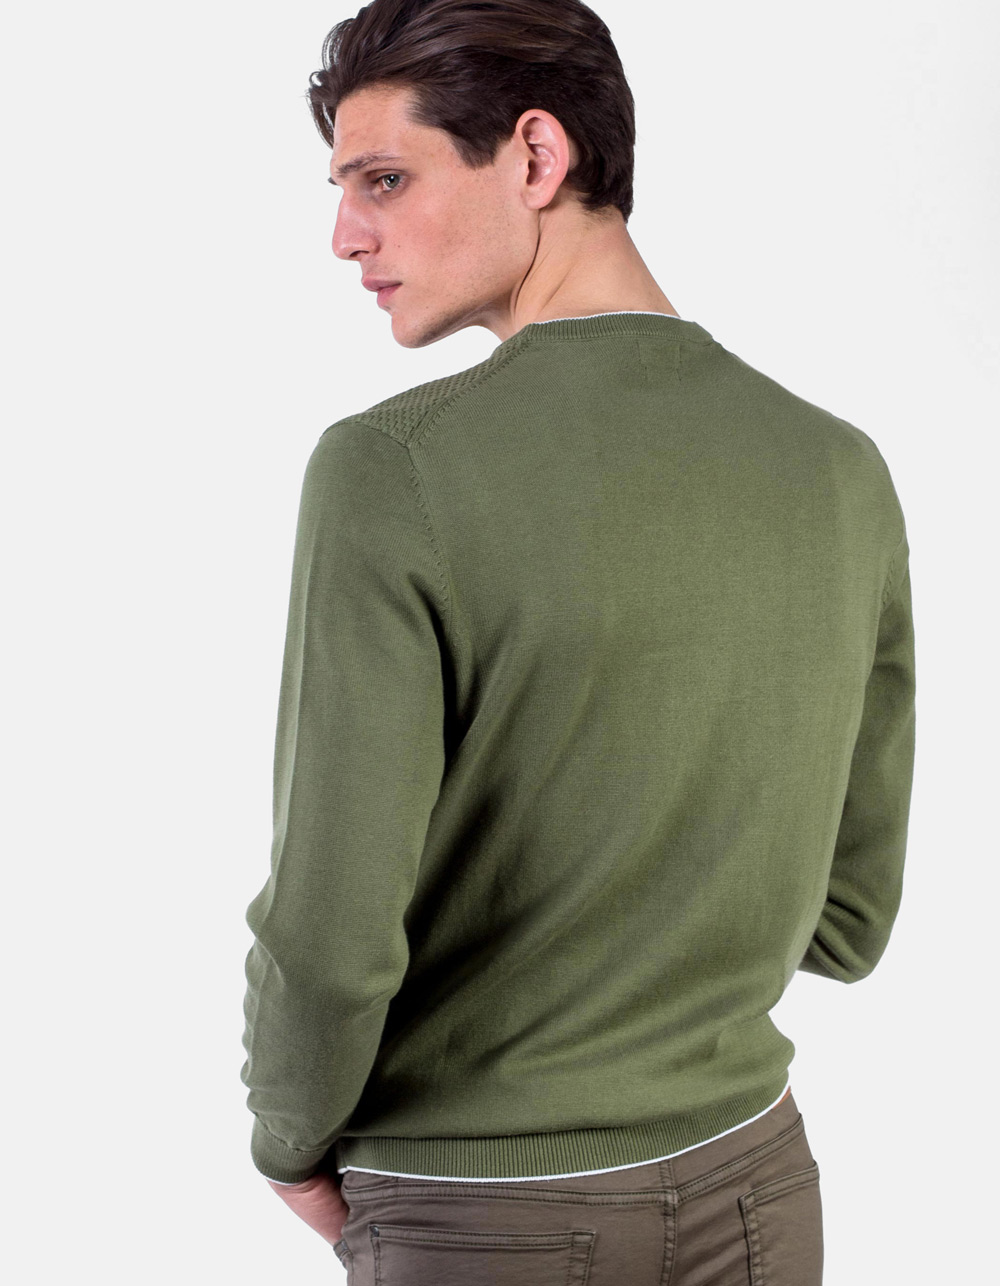 Green round collar sweater structure - Backside